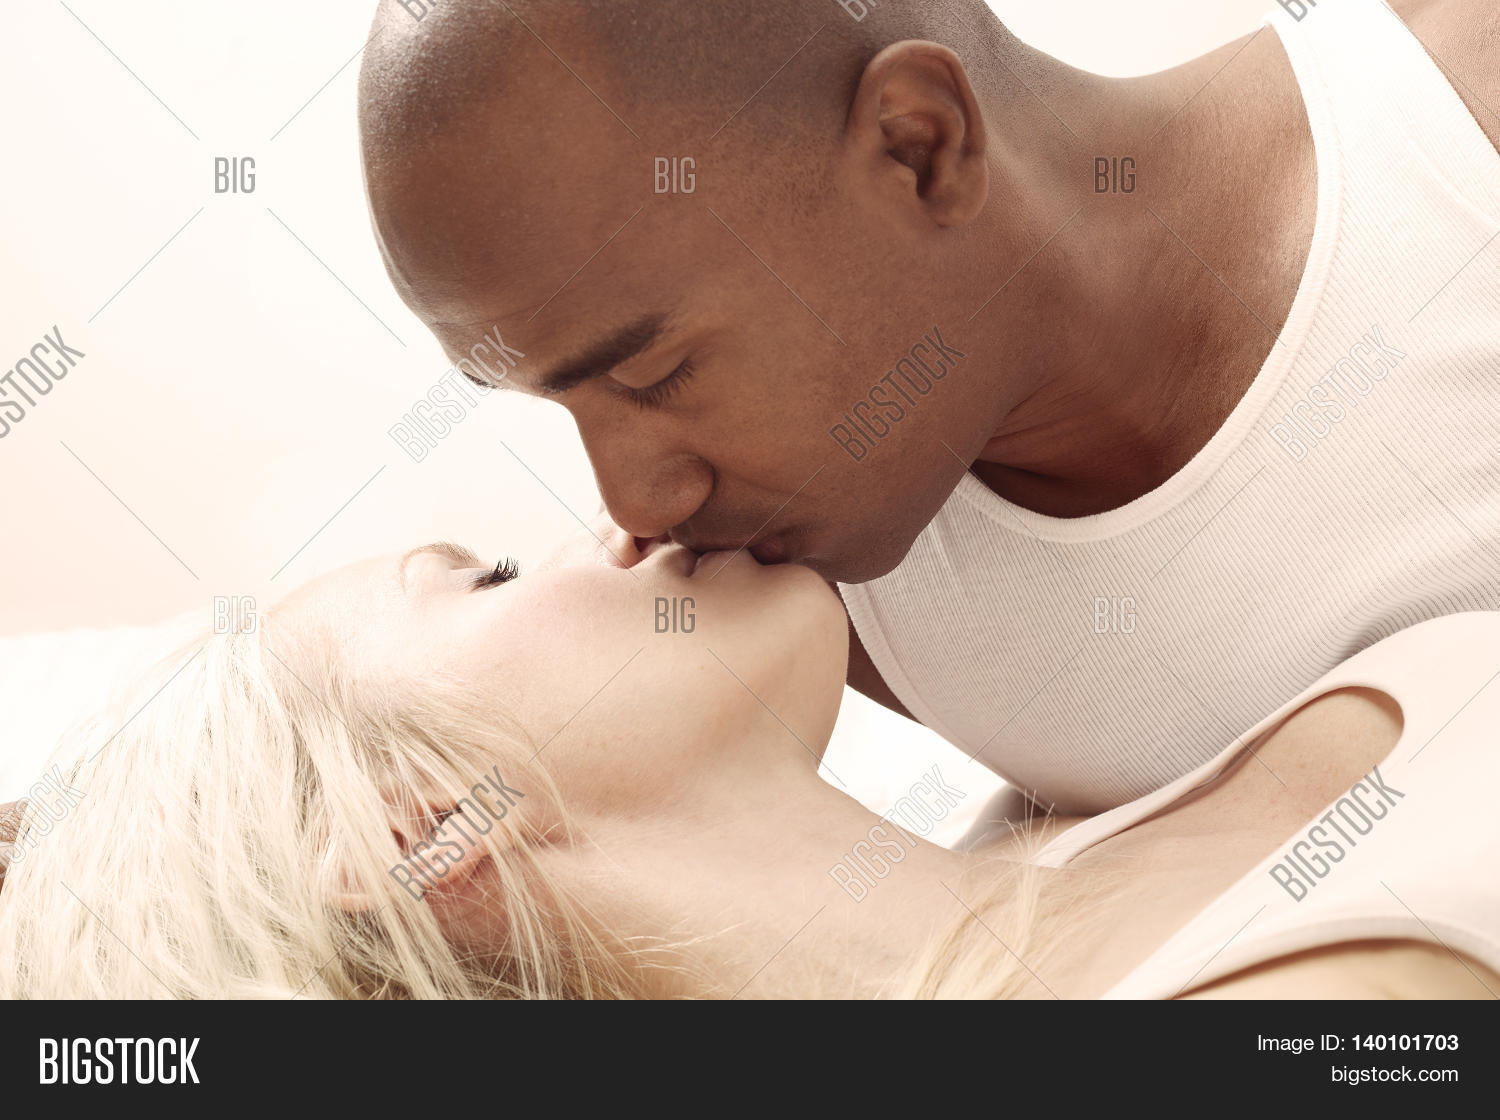 White Girl Kissing Black Guy